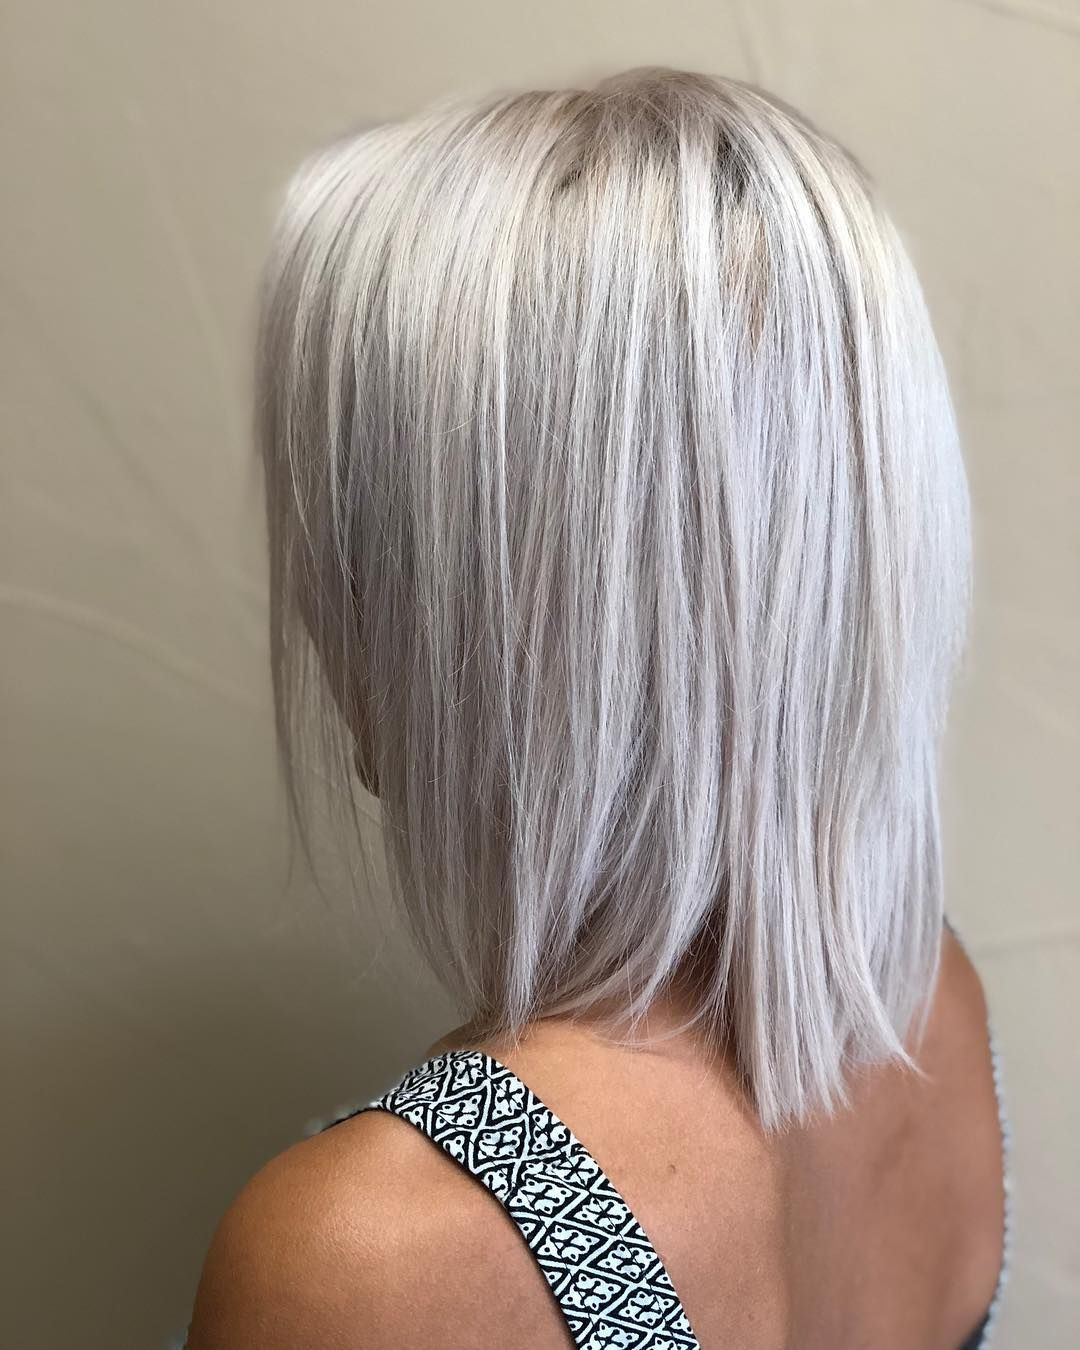 Platinite Ici Redkenfrance Redken Salonm Color Hair Haircuts Straight Hair Bobs For Thin Hair Hair Styles